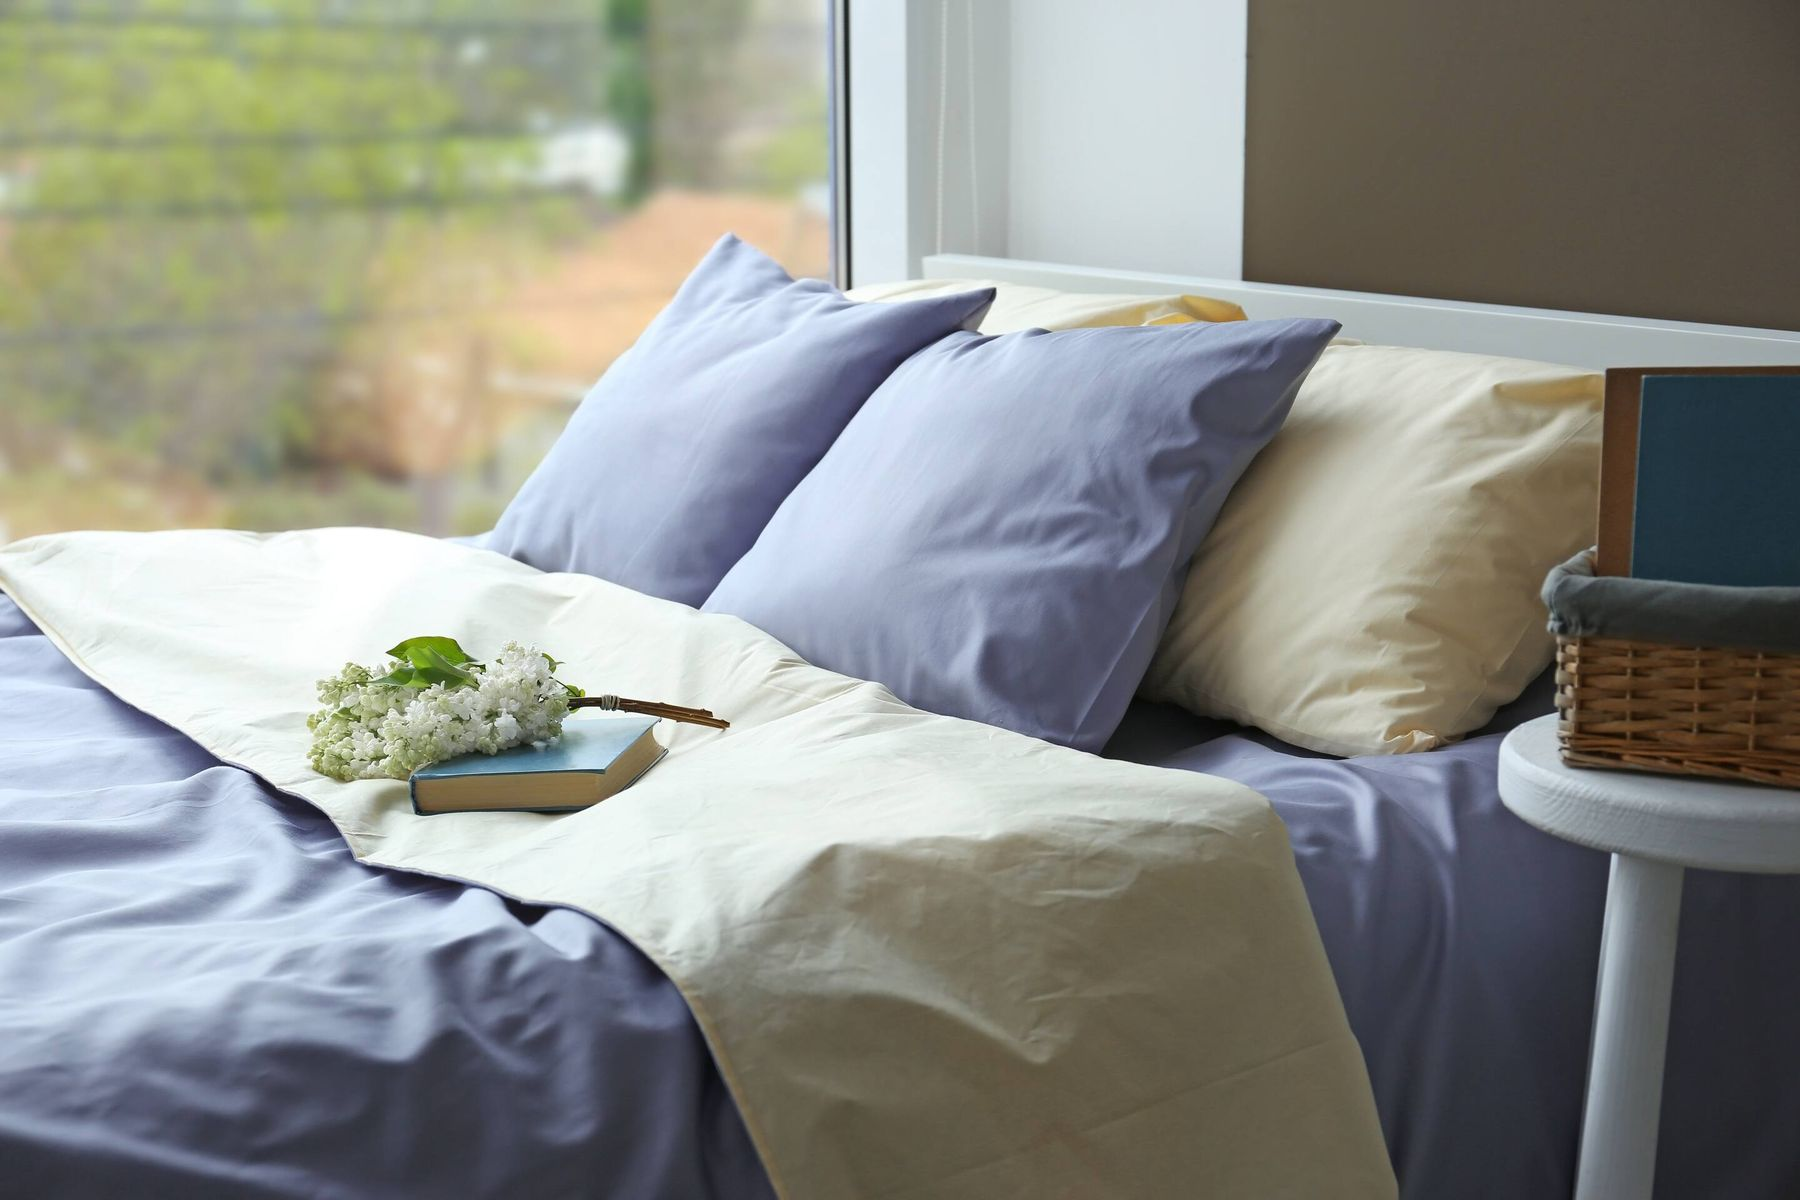 How to Keep Your Duvet and Bedsheets Smelling Great Always!